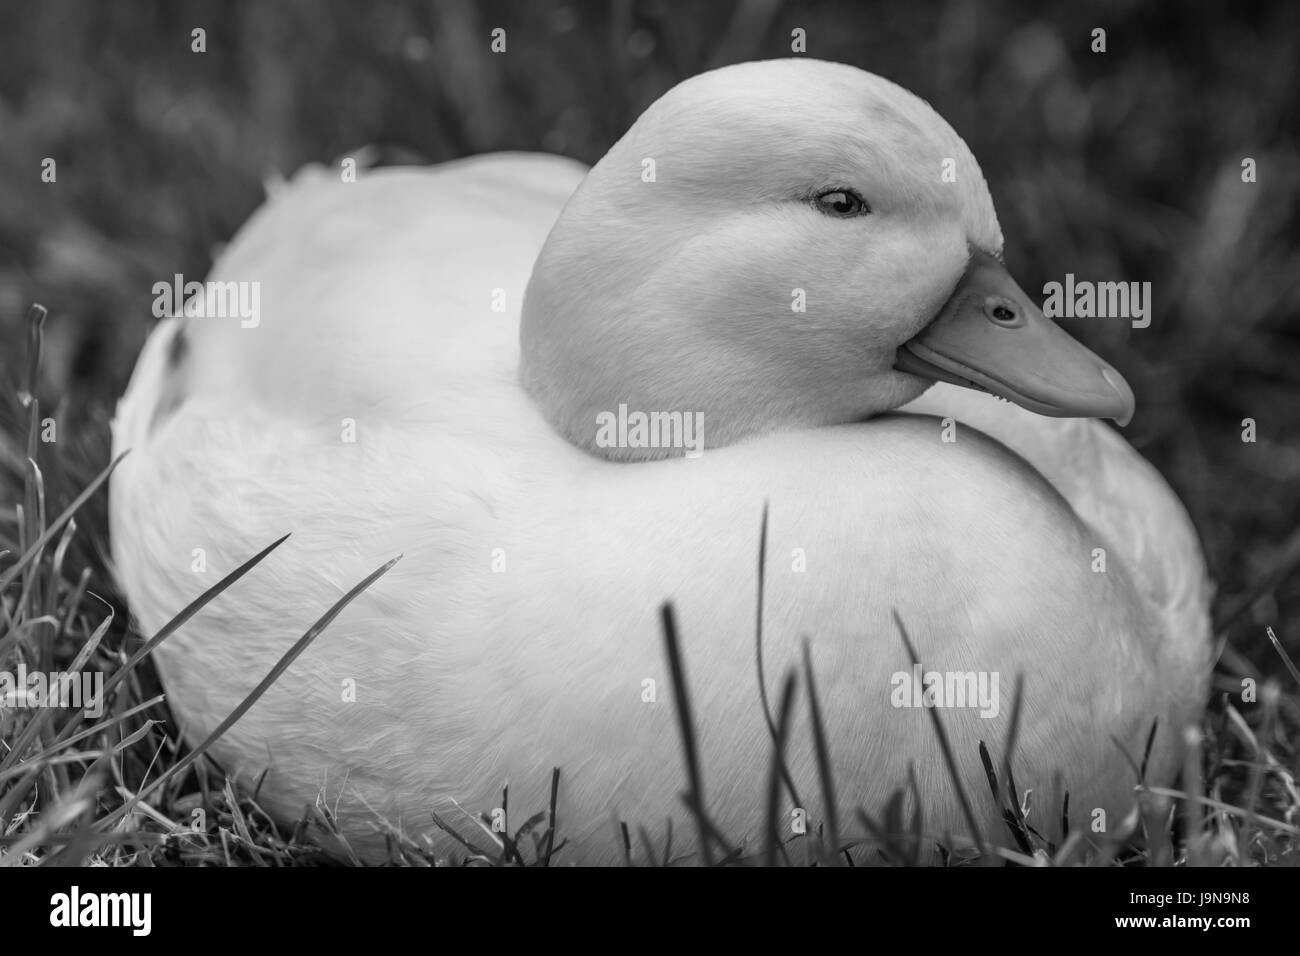 White Male Callduck / Call Duck on Grass - Stock Image